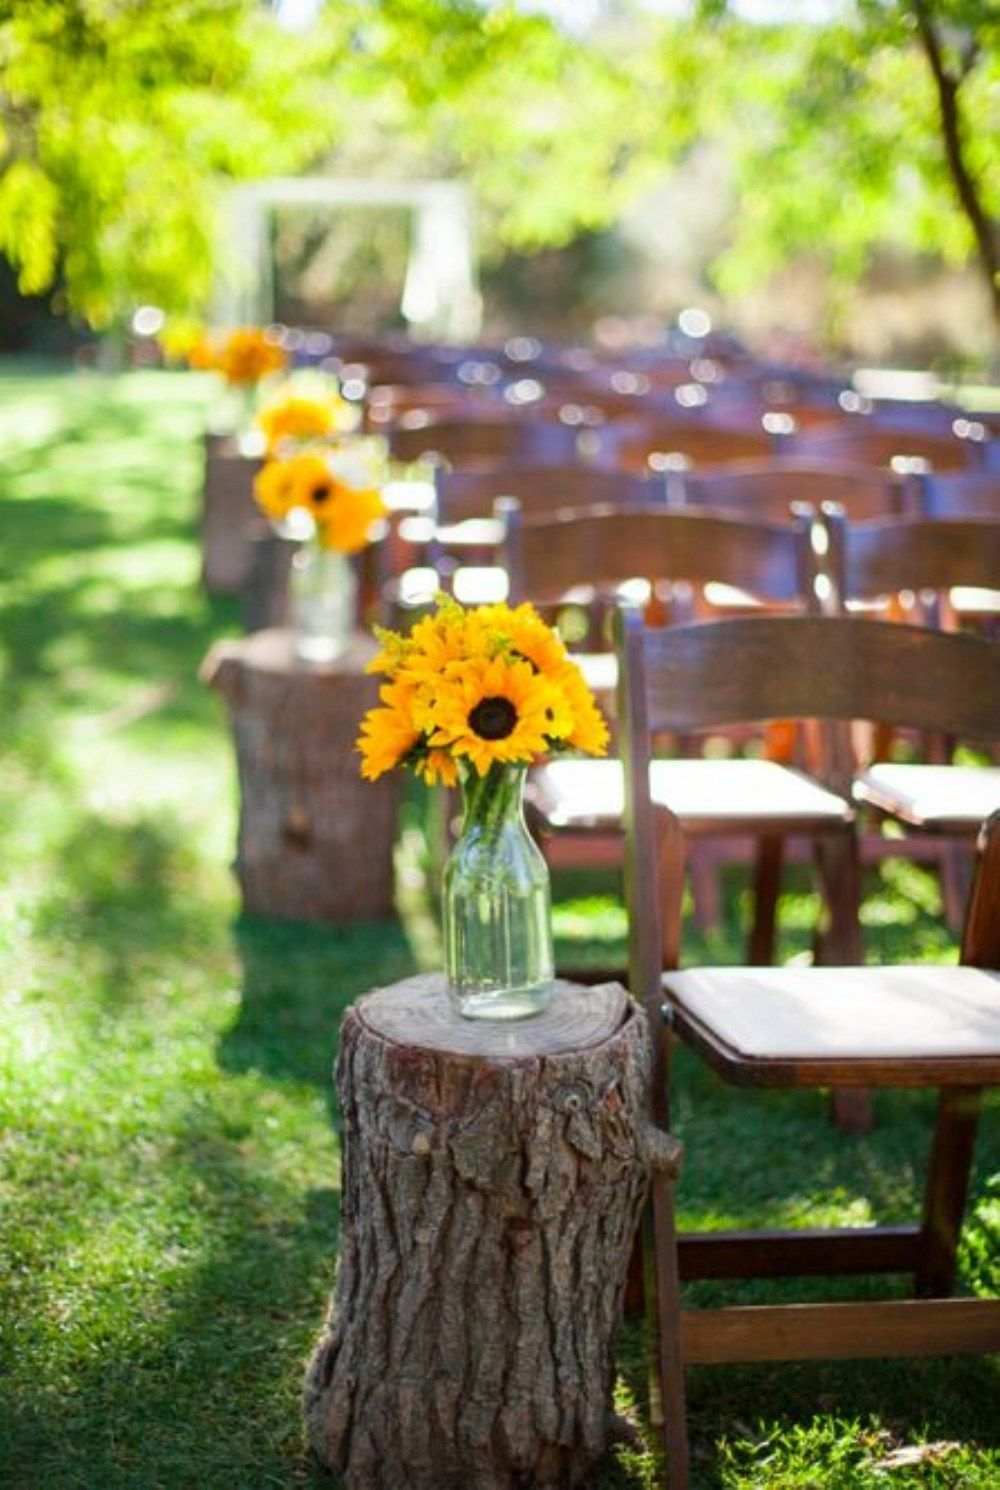 Budgetfriendly outdoor wedding ideas for fall   Wedding Flowers